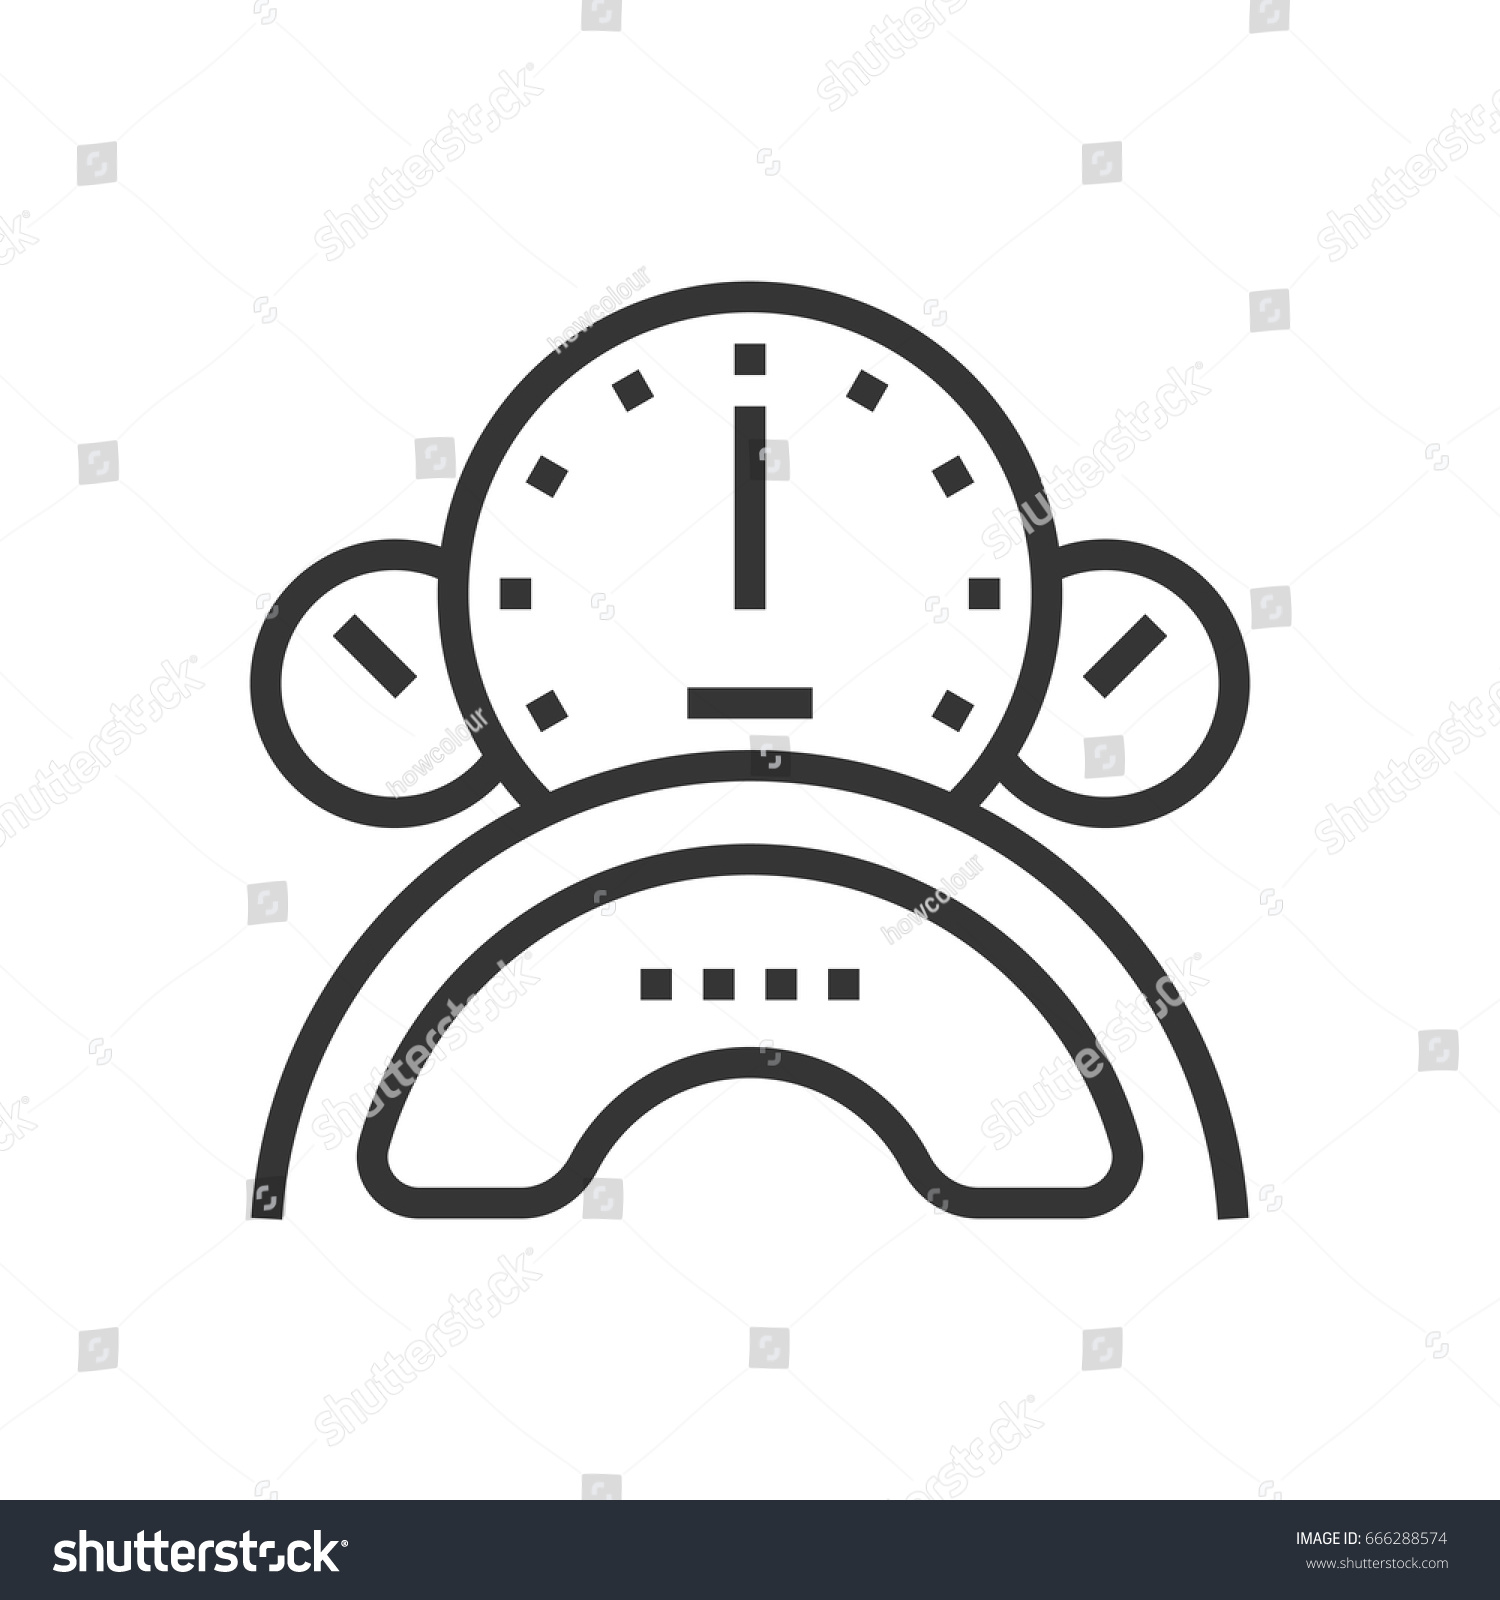 Speedometer icon part square icons car stock vector 666288574 speedometer icon part of the square icons car service icon set the illustration biocorpaavc Image collections